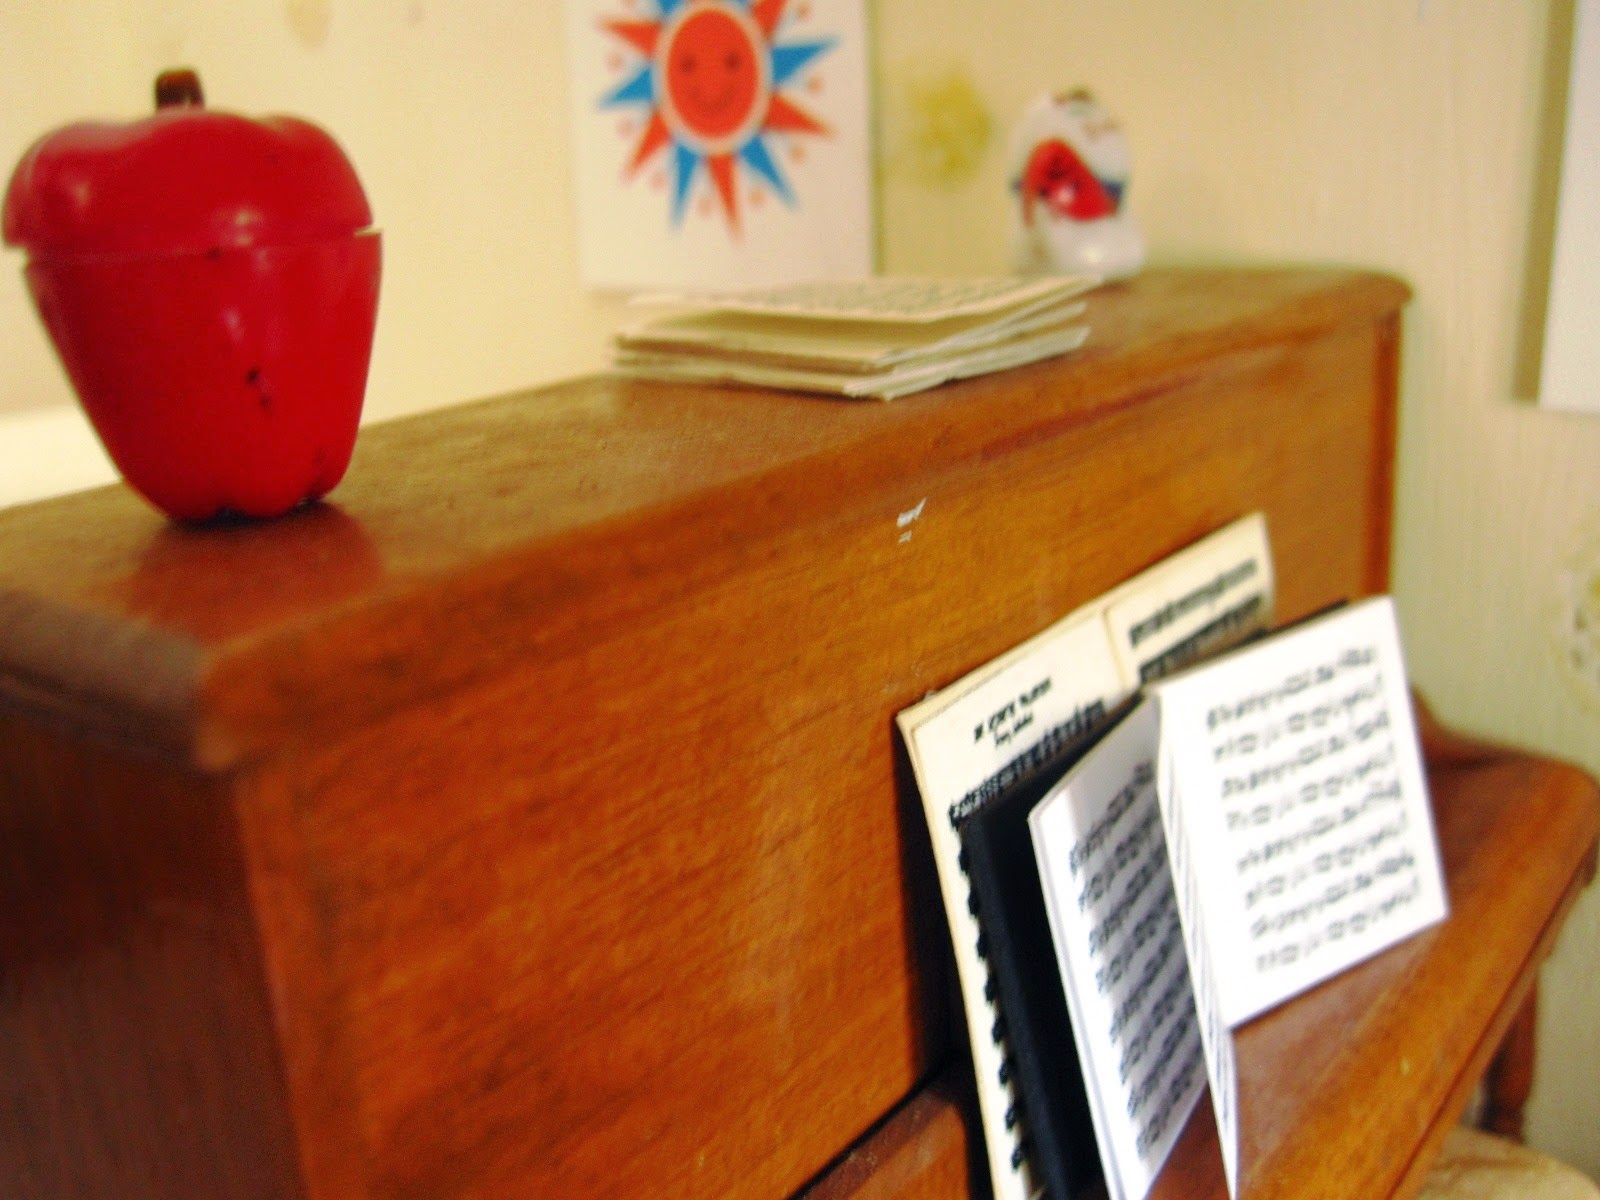 Modern dolls' house miniature piano with sheet music.